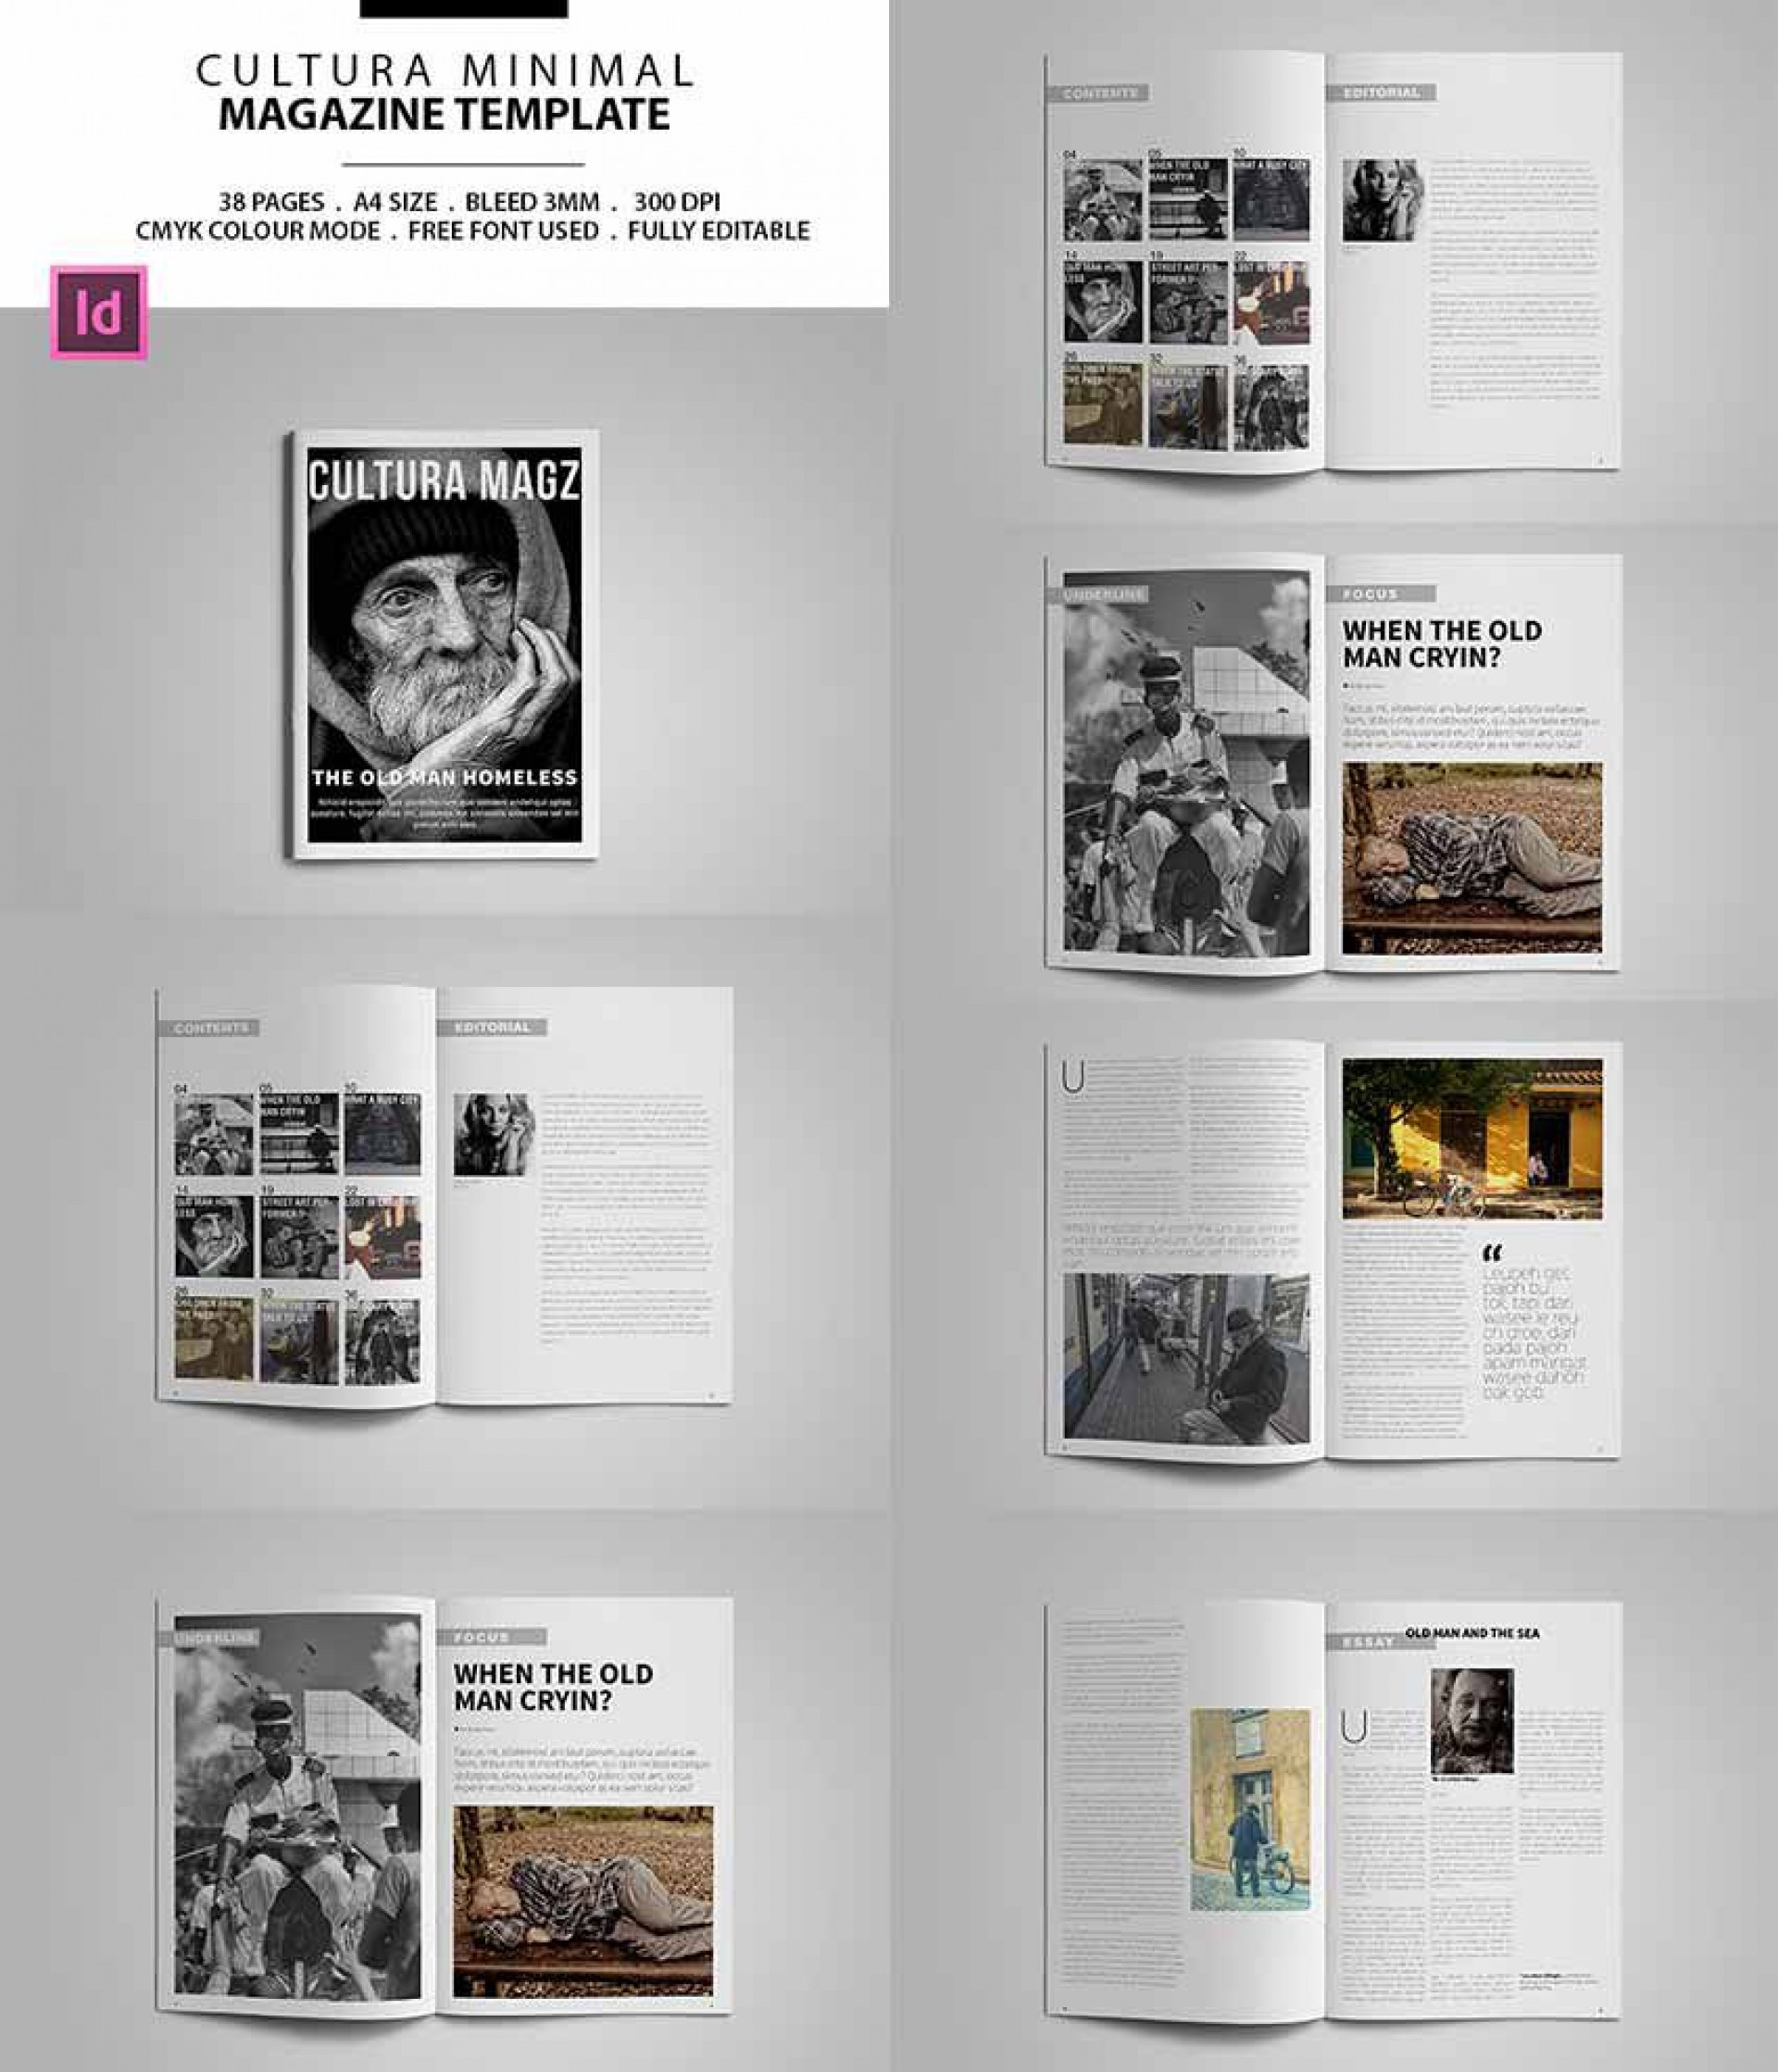 006 Astounding Free Magazine Layout Template Example  Templates For Word Microsoft Powerpoint1920